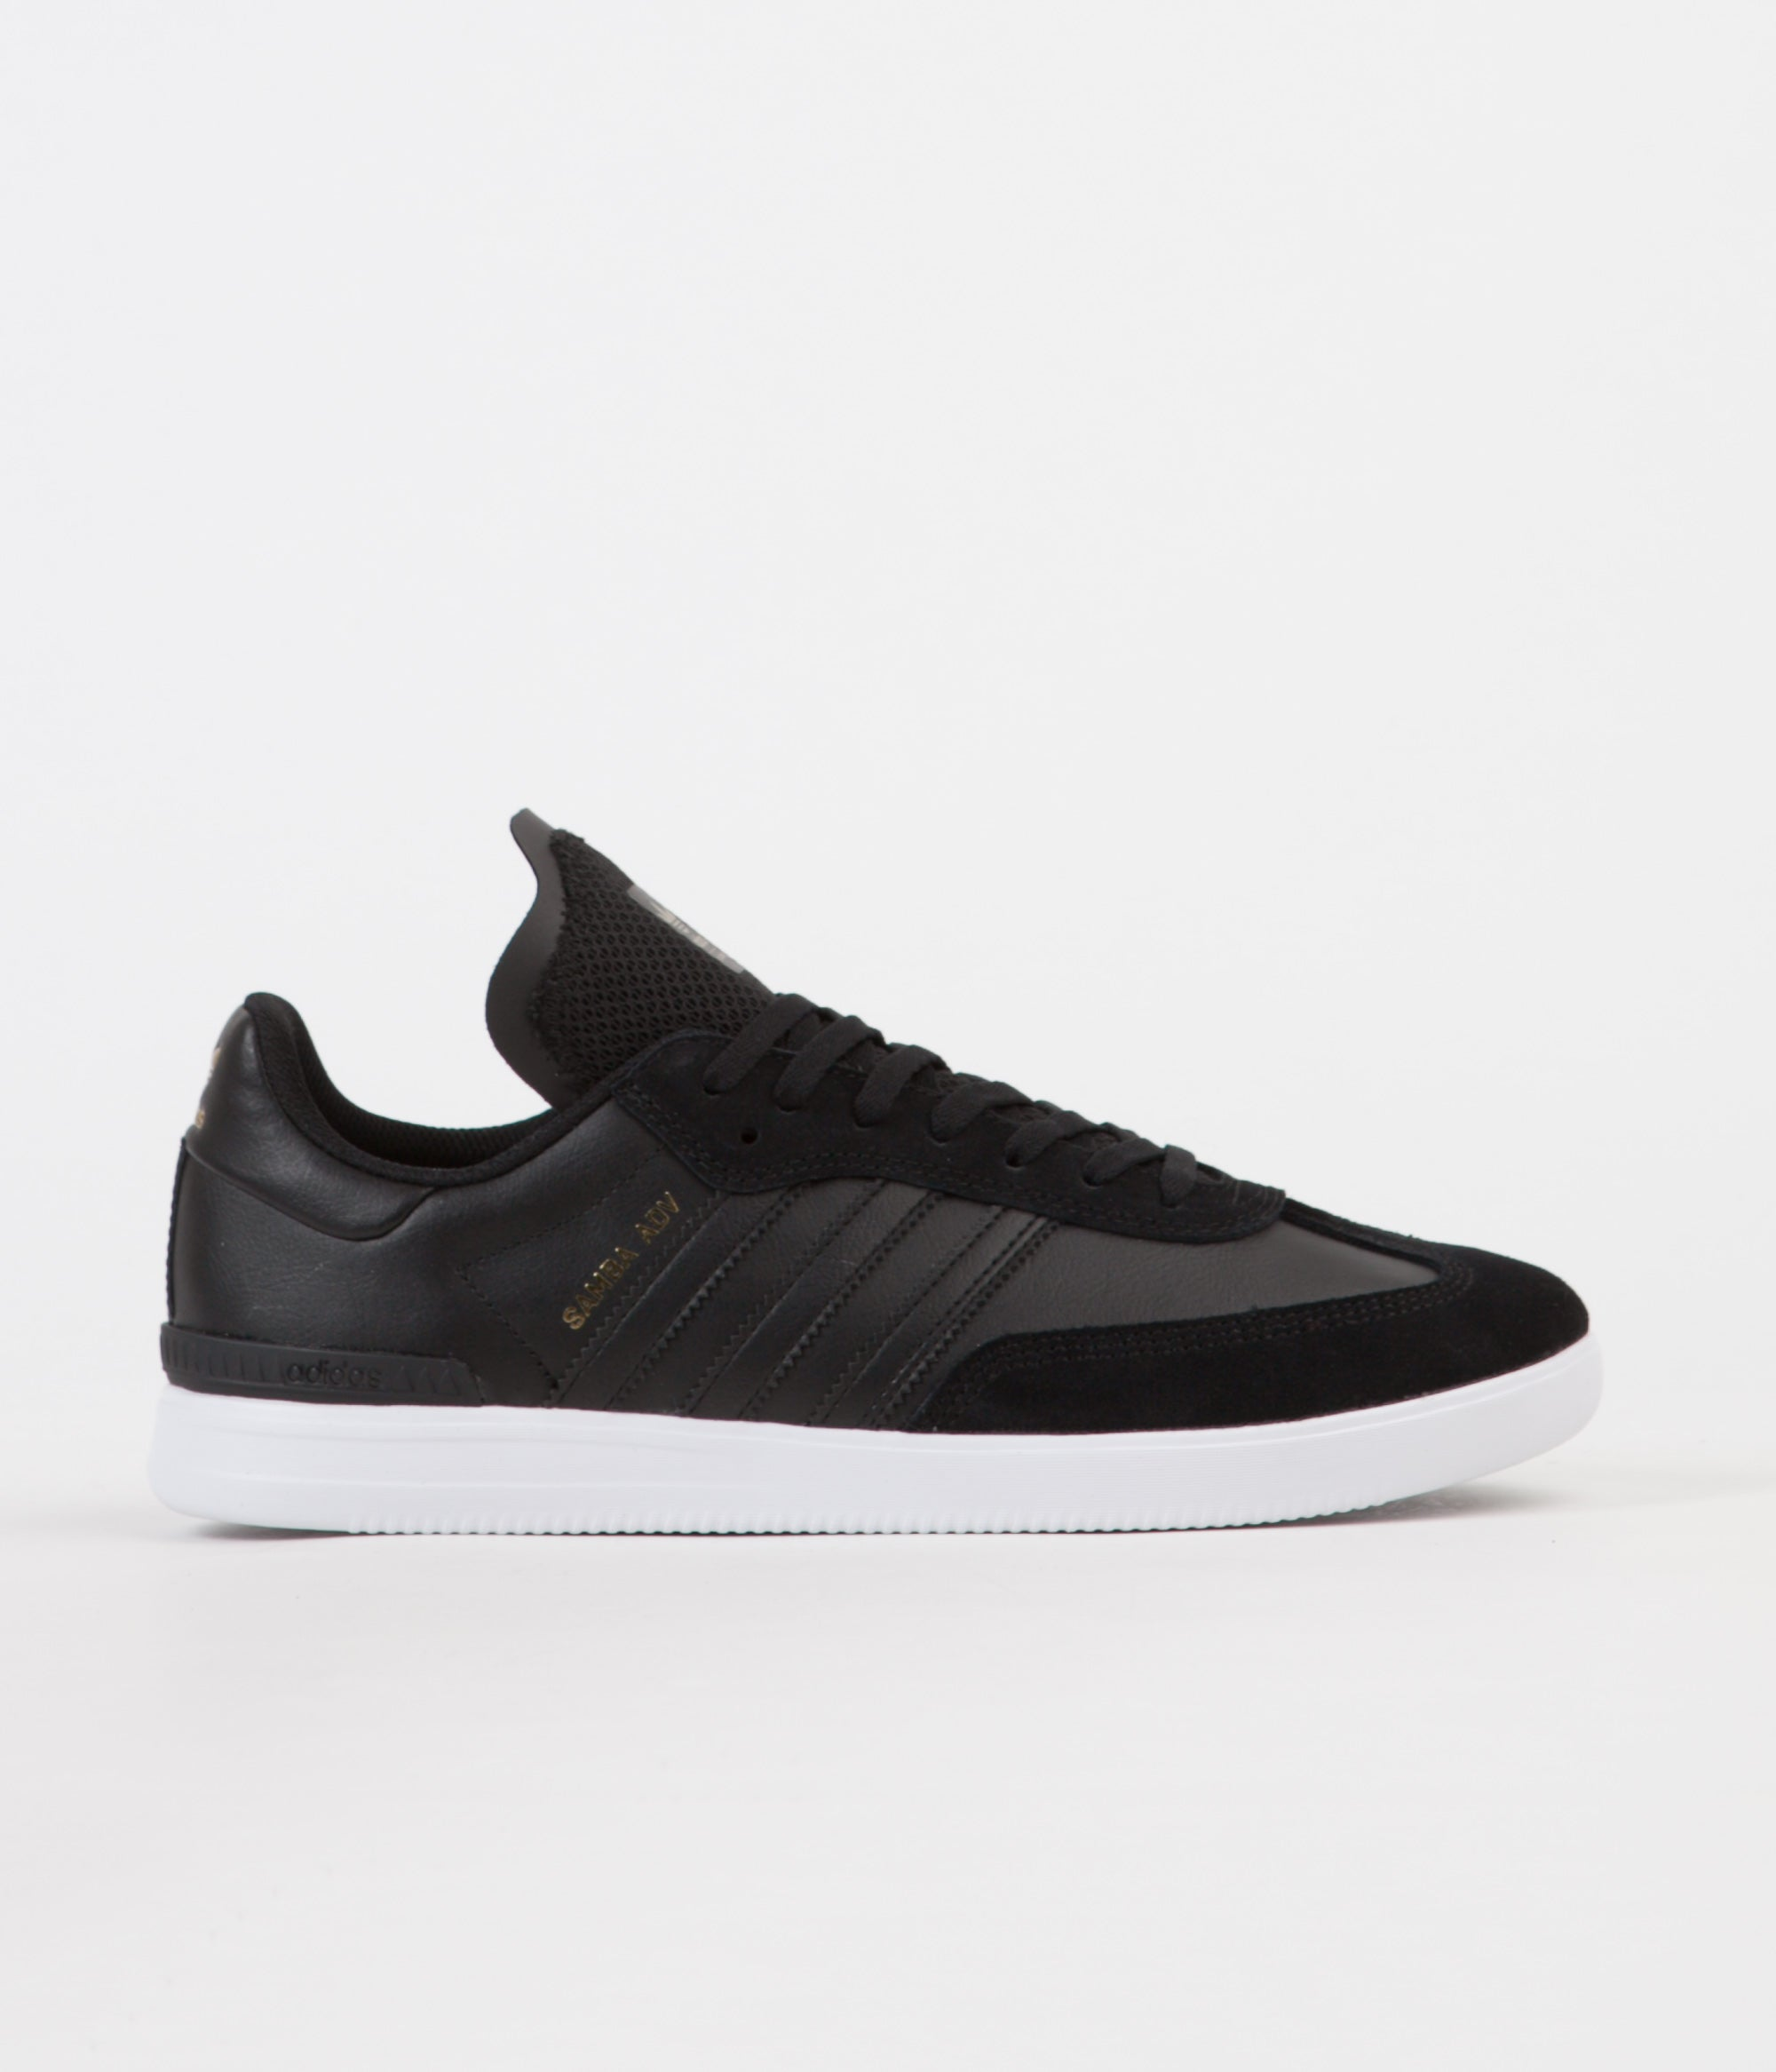 cheaper dfd23 a5f03 Adidas Samba ADV Shoes - Core Black  White  Gold Metallic